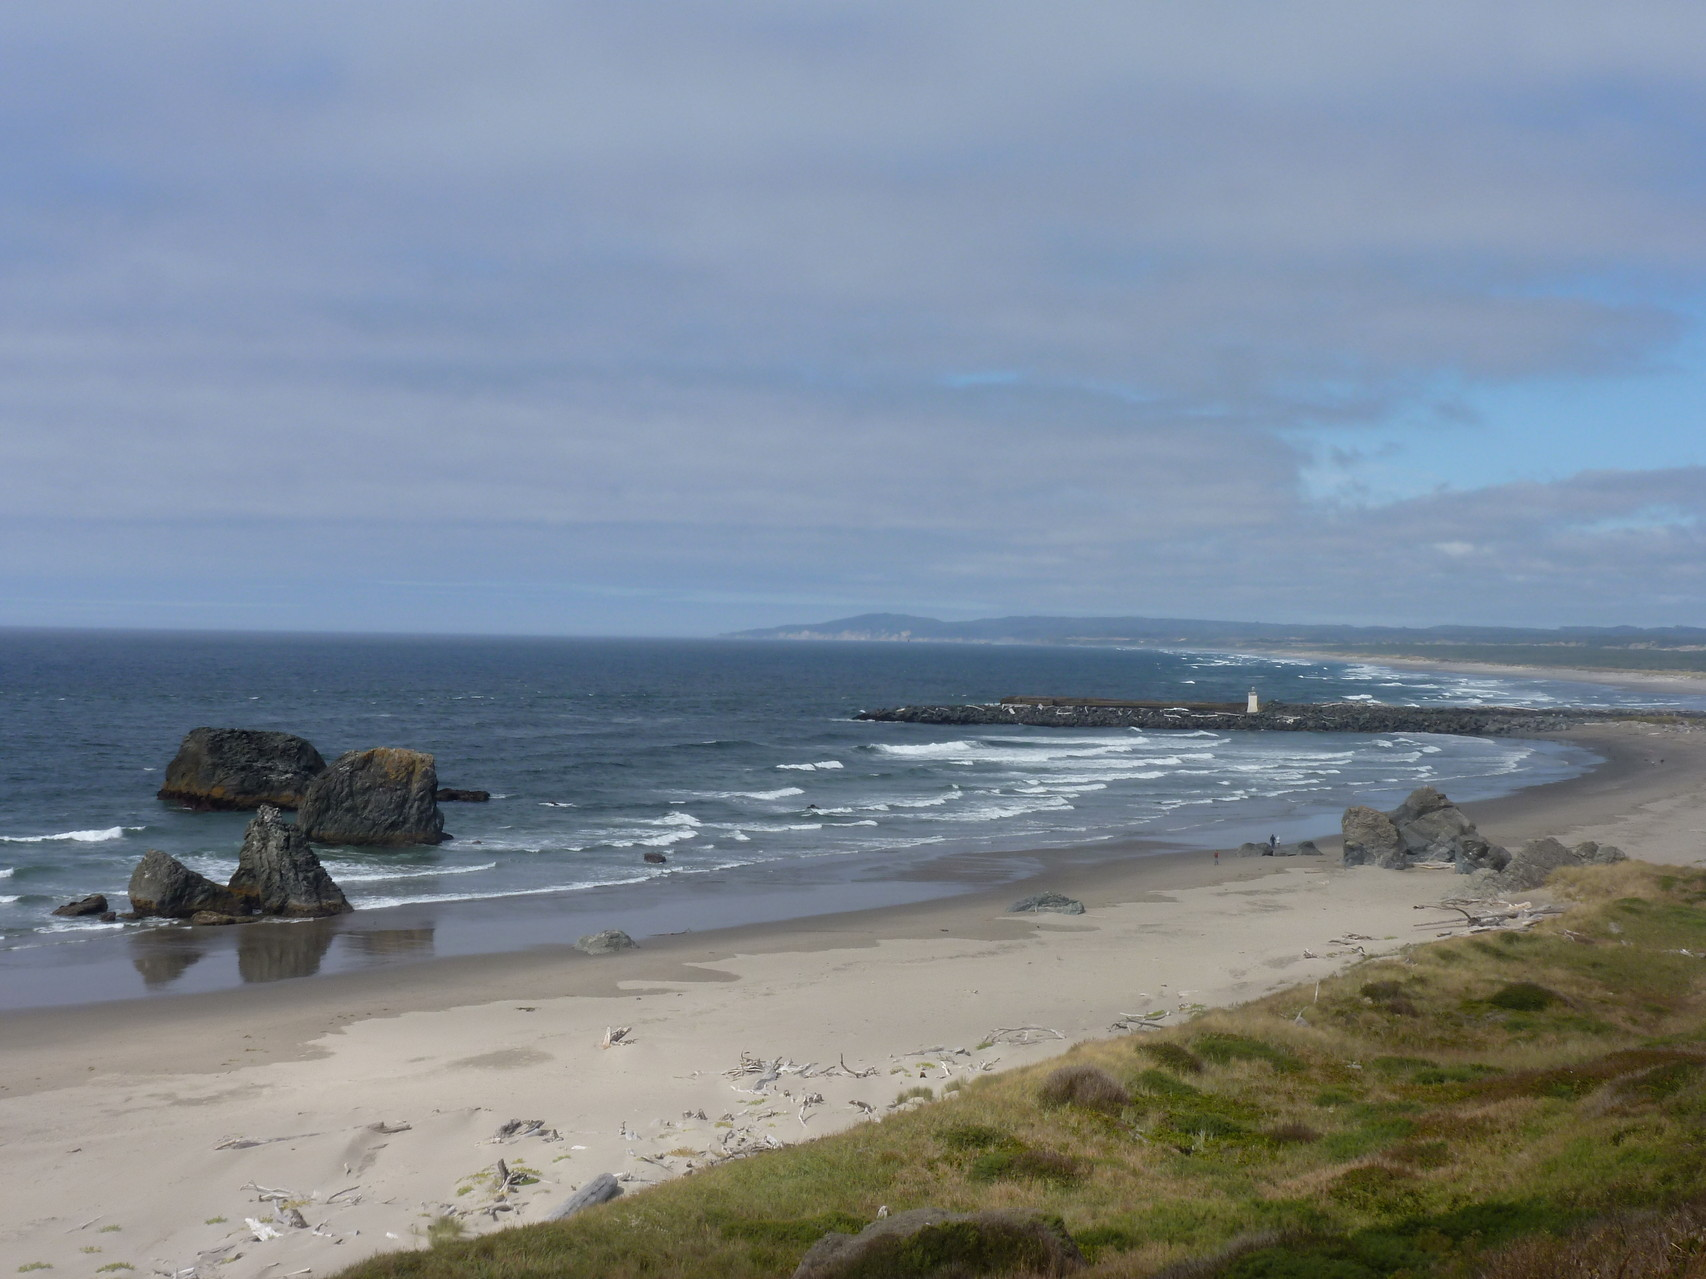 Scenic point in Bandon, OR